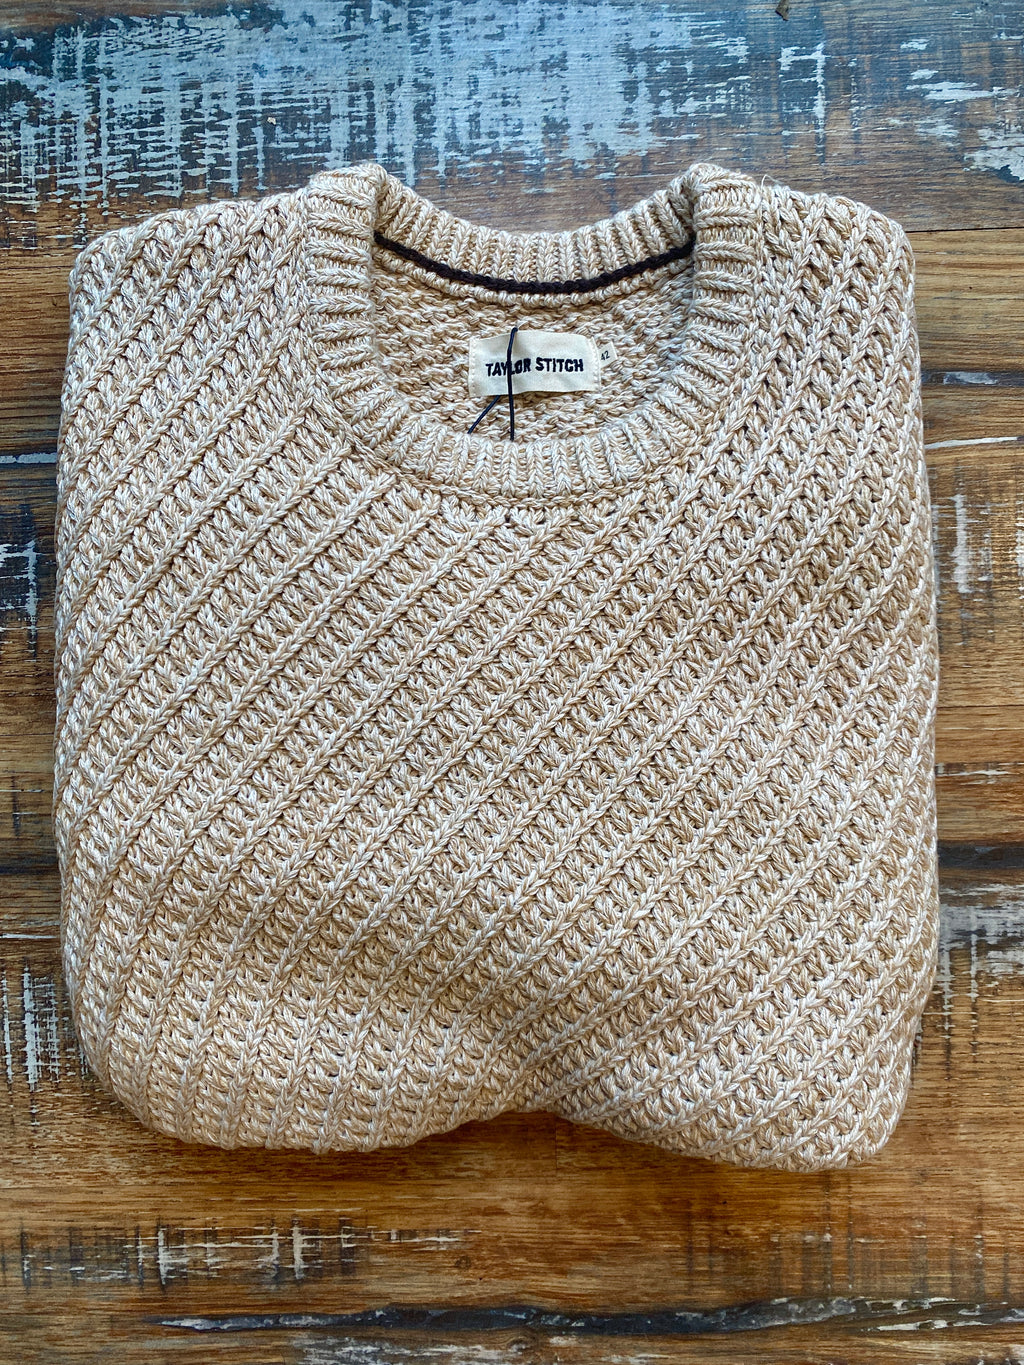 Taylor Stitch- The Adirondack Sweater in Natural